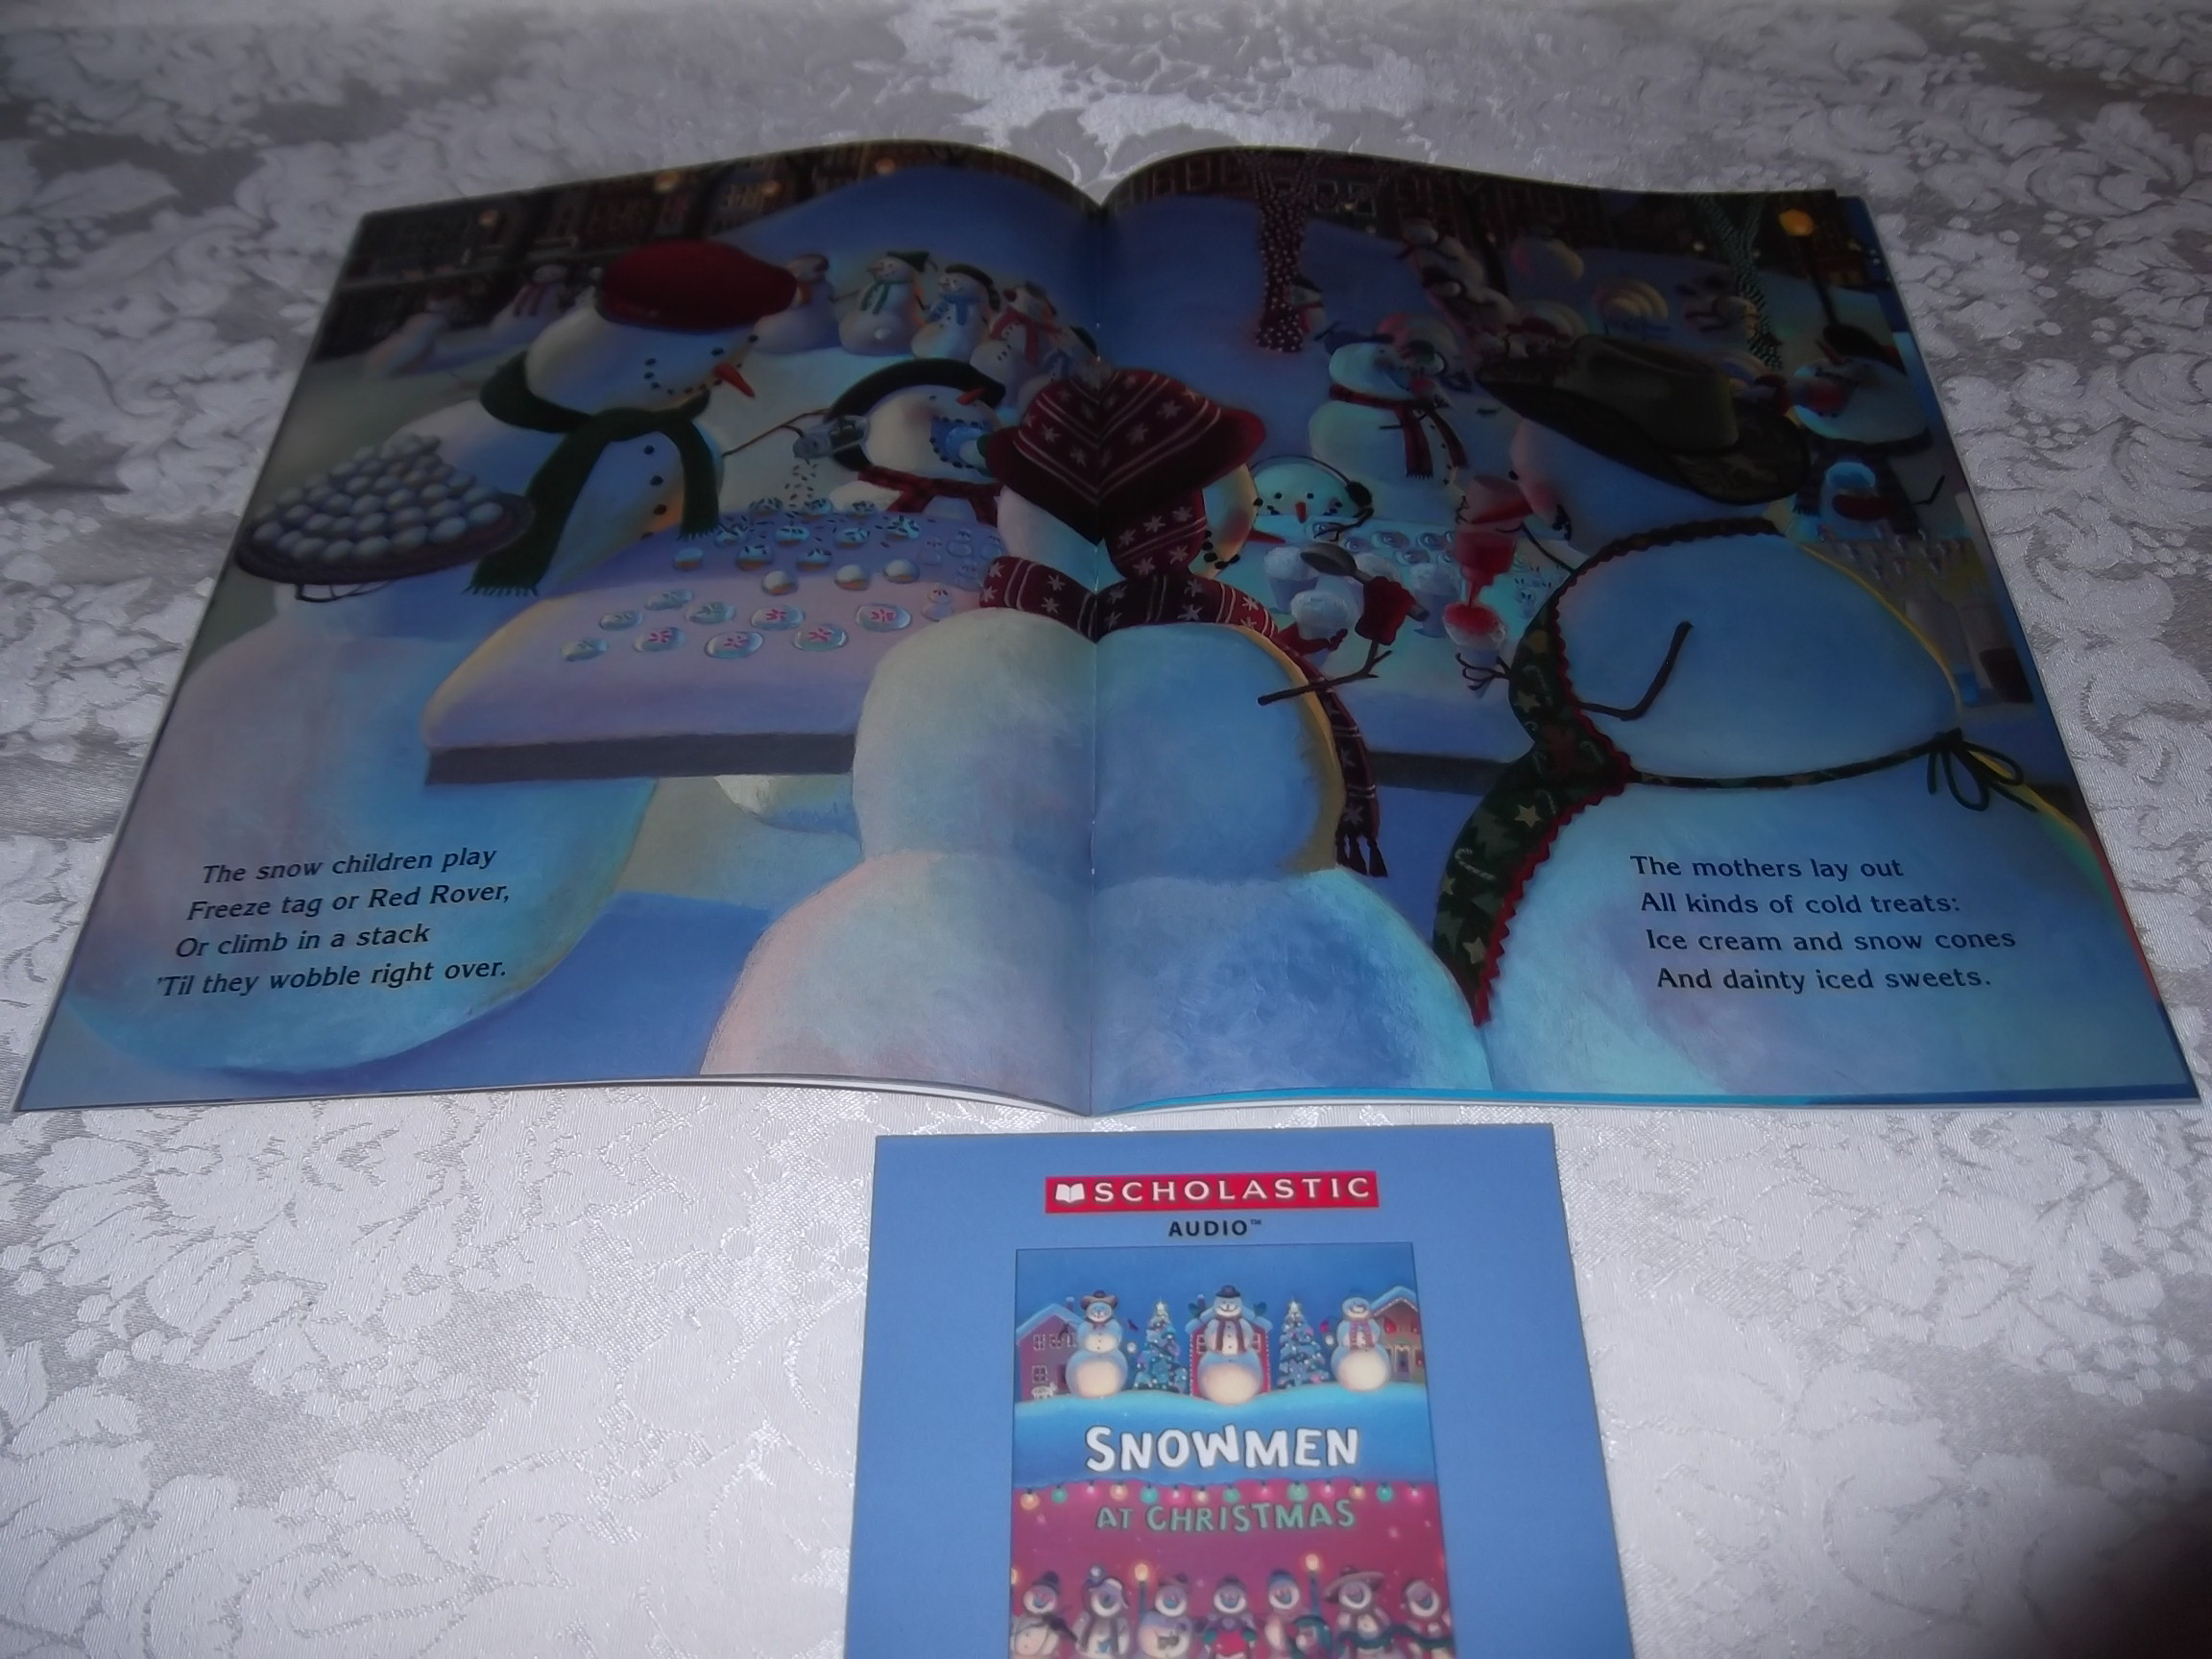 Image 3 of Snowmen At Christmas Caralyn Buehner Audio CD and SC Brand New